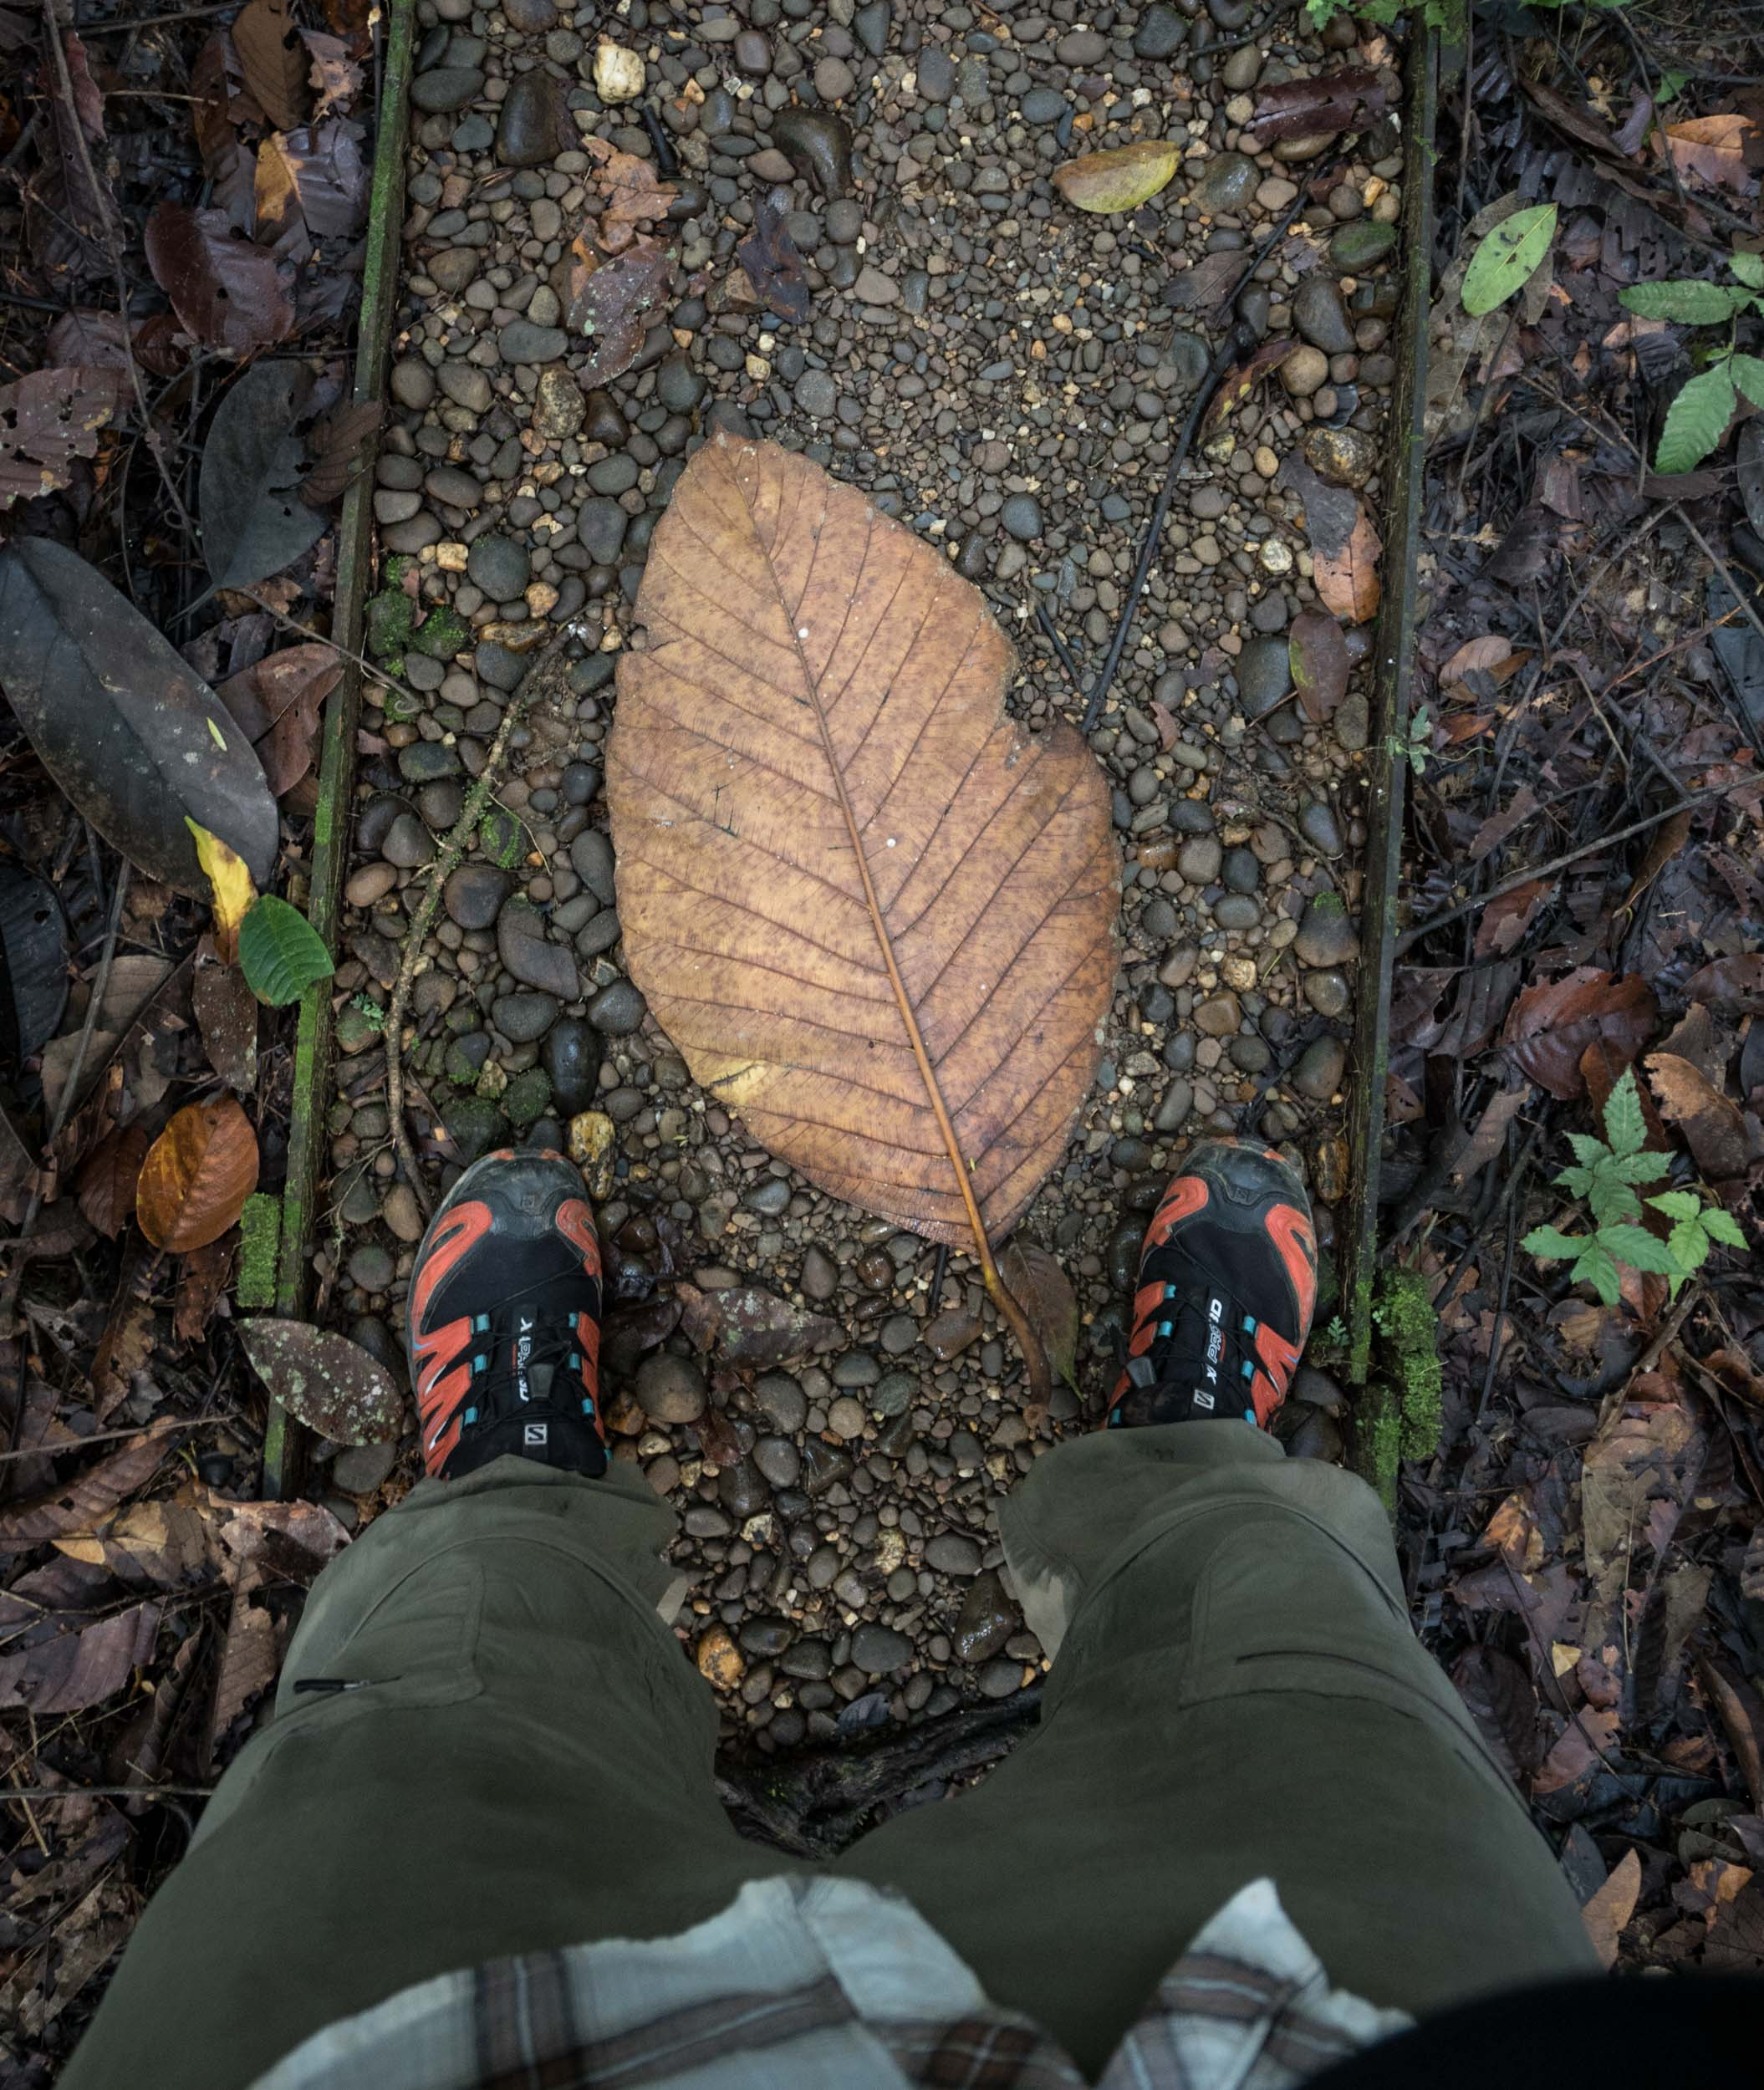 Really massive leaf.... Could easily be one of ours back home except for the size!